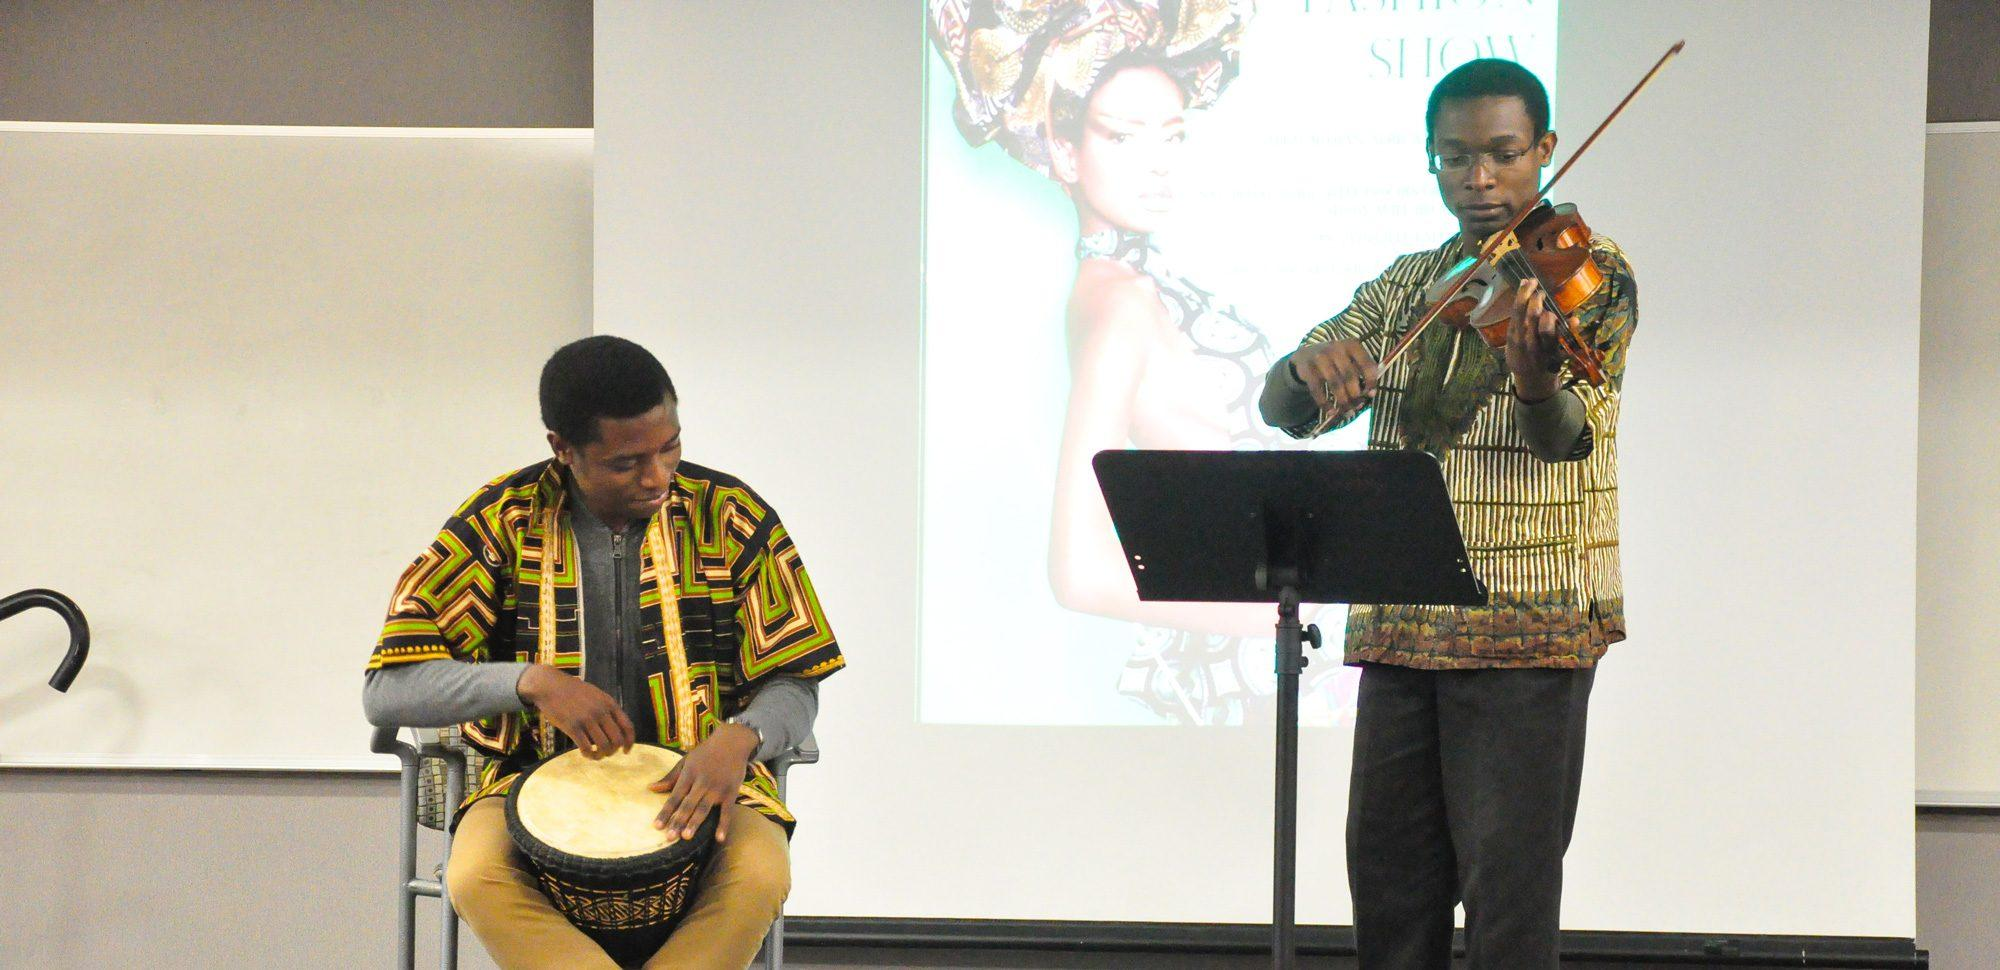 The Appalachian State African fashion show